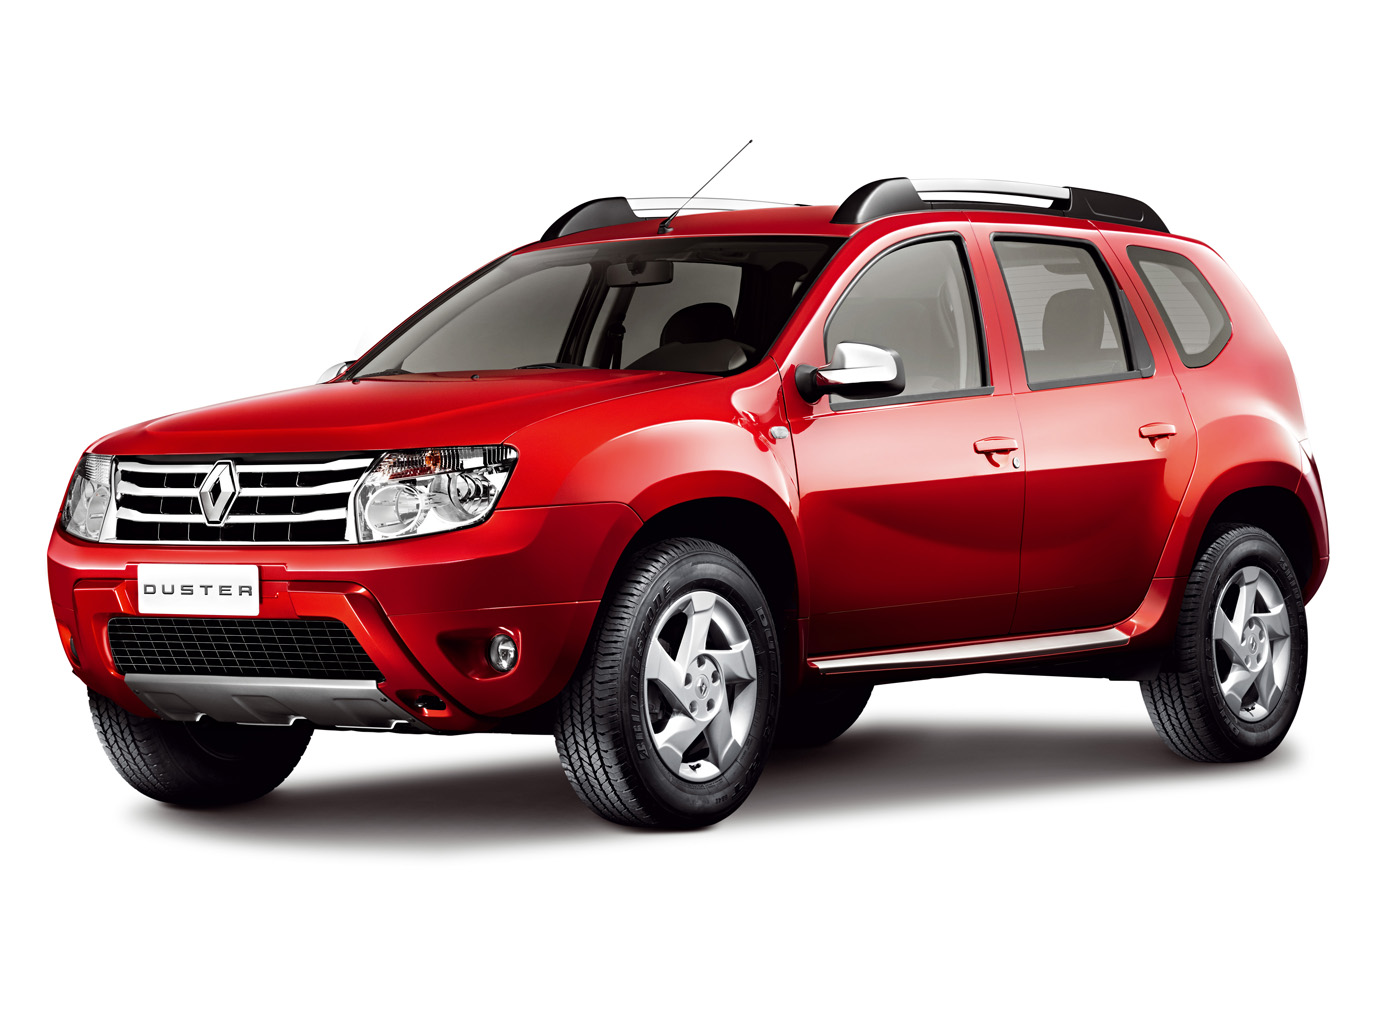 2011 renault duster pictures information and specs auto. Black Bedroom Furniture Sets. Home Design Ideas